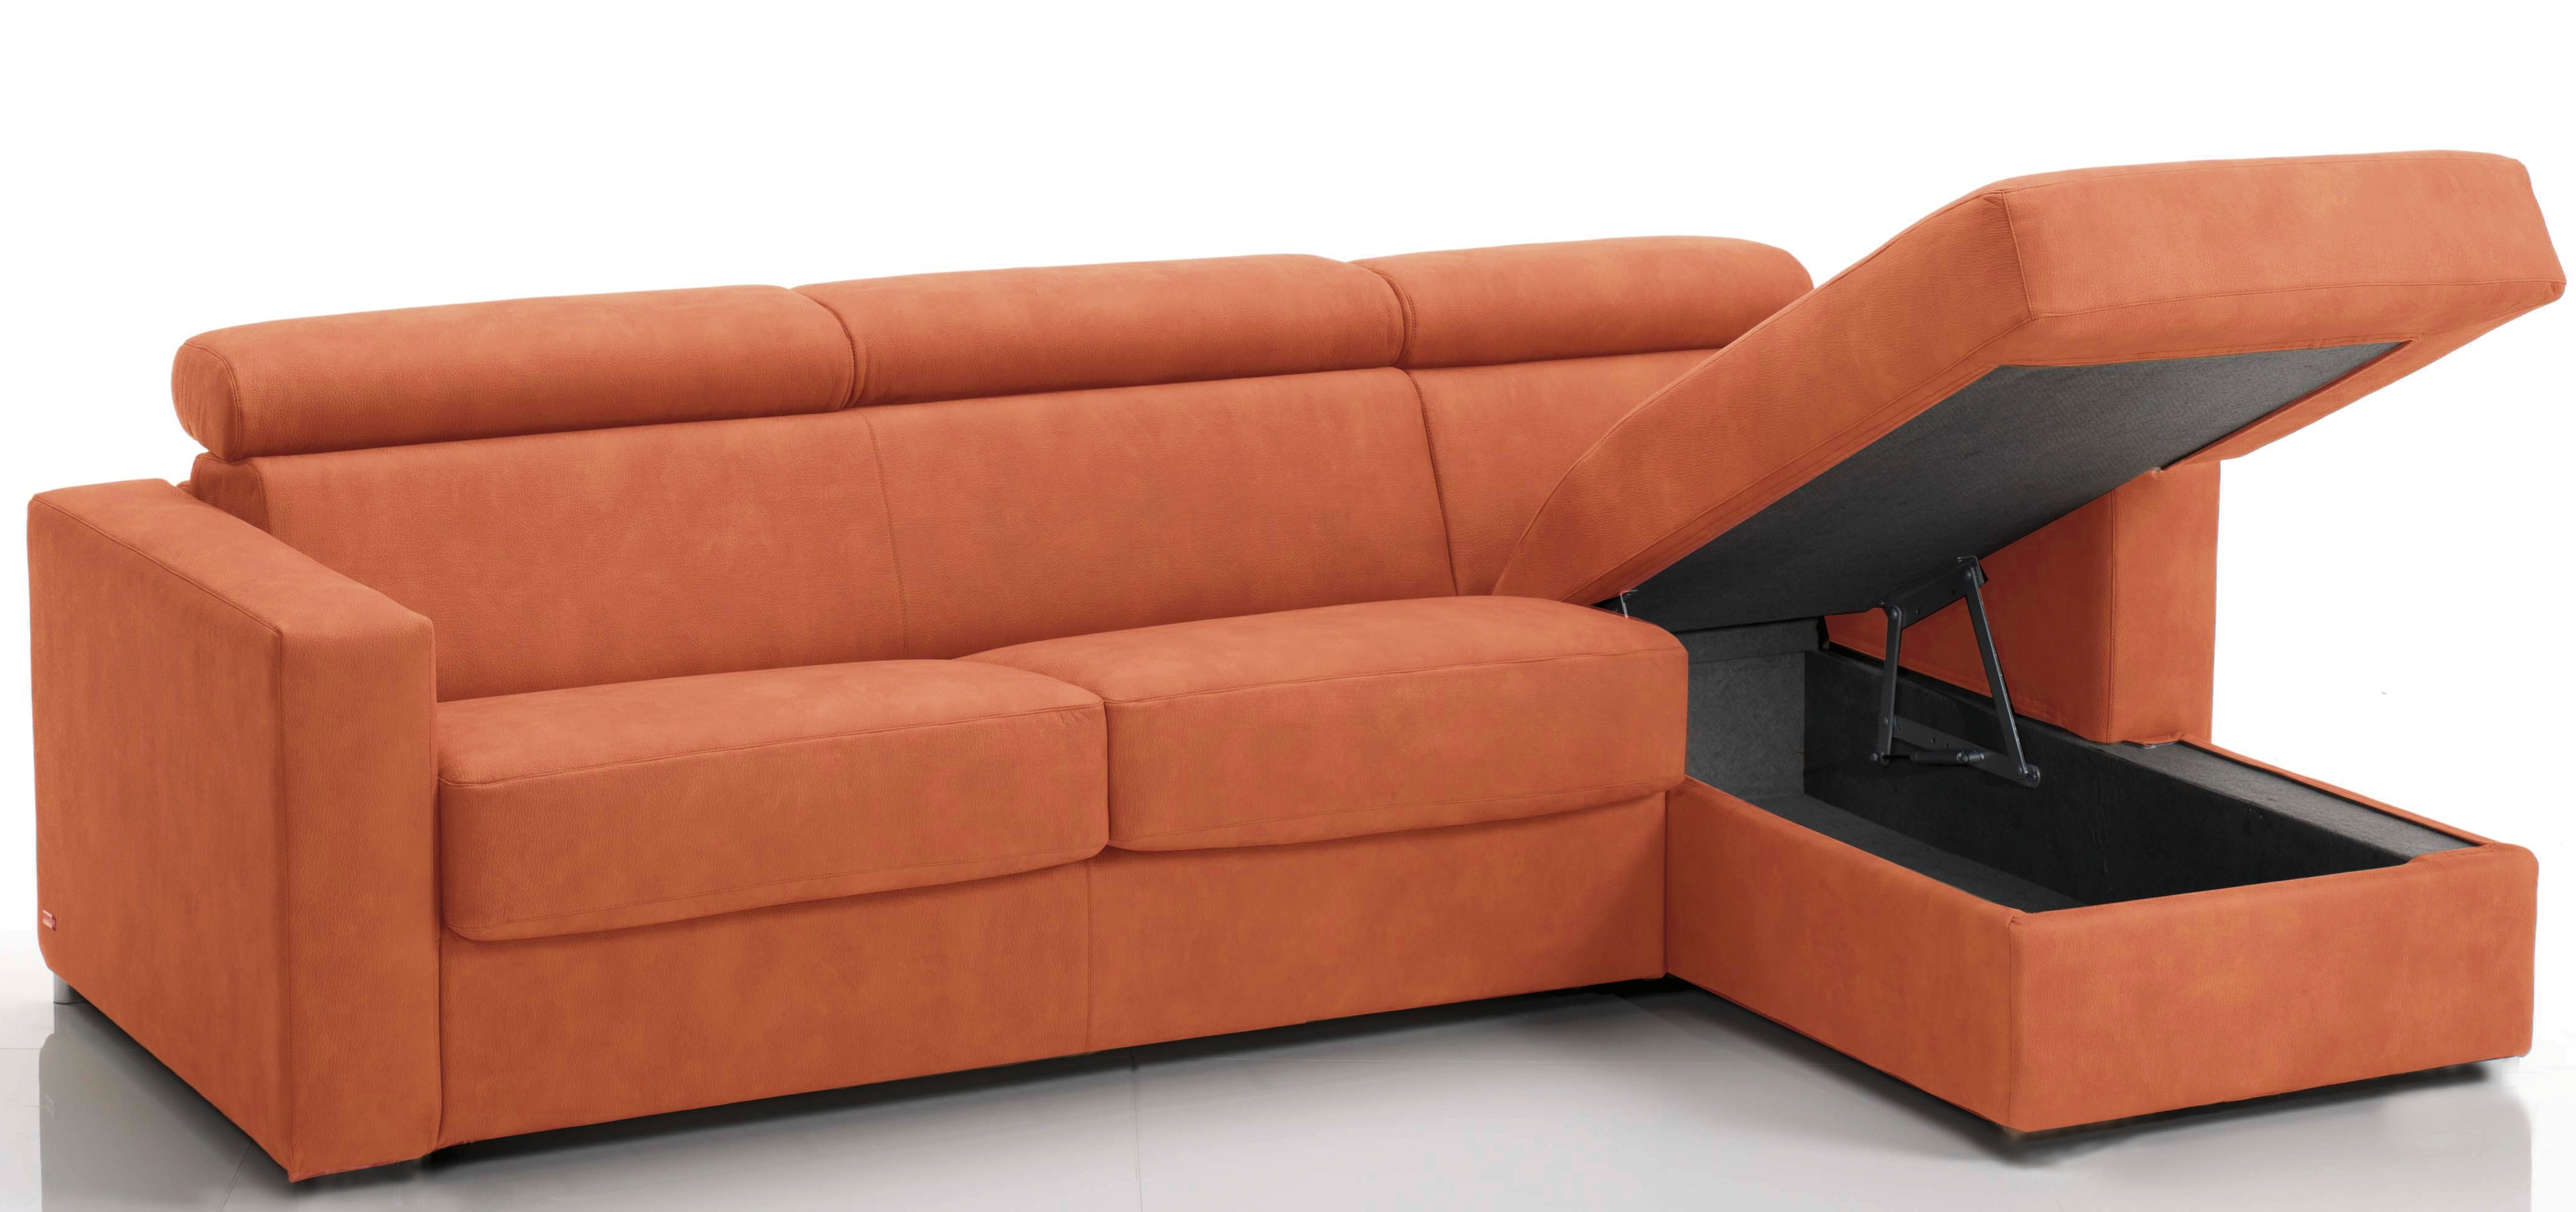 canap d 39 angle convertible avec t ti res rev tement microfibre orange lova mod le 3 places maxi. Black Bedroom Furniture Sets. Home Design Ideas